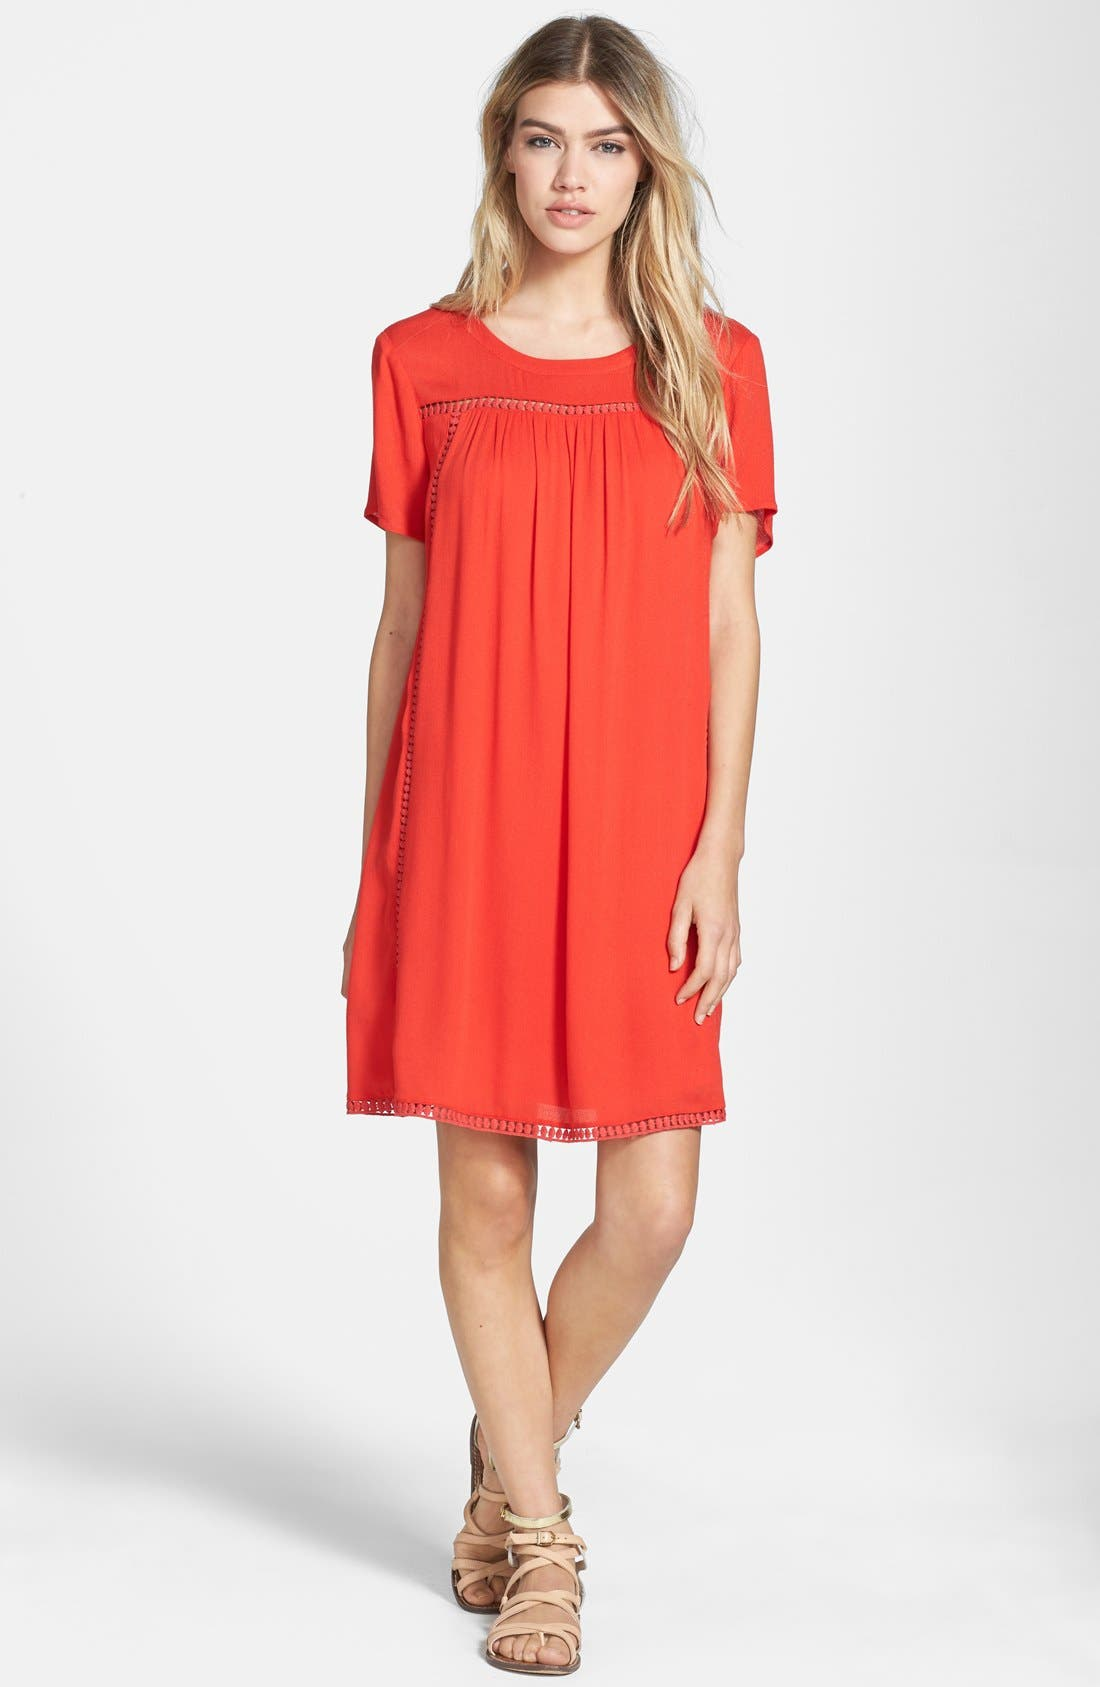 Alternate Image 1 Selected - Ella Moss 'Stella' Lattice Trim Shift Dress